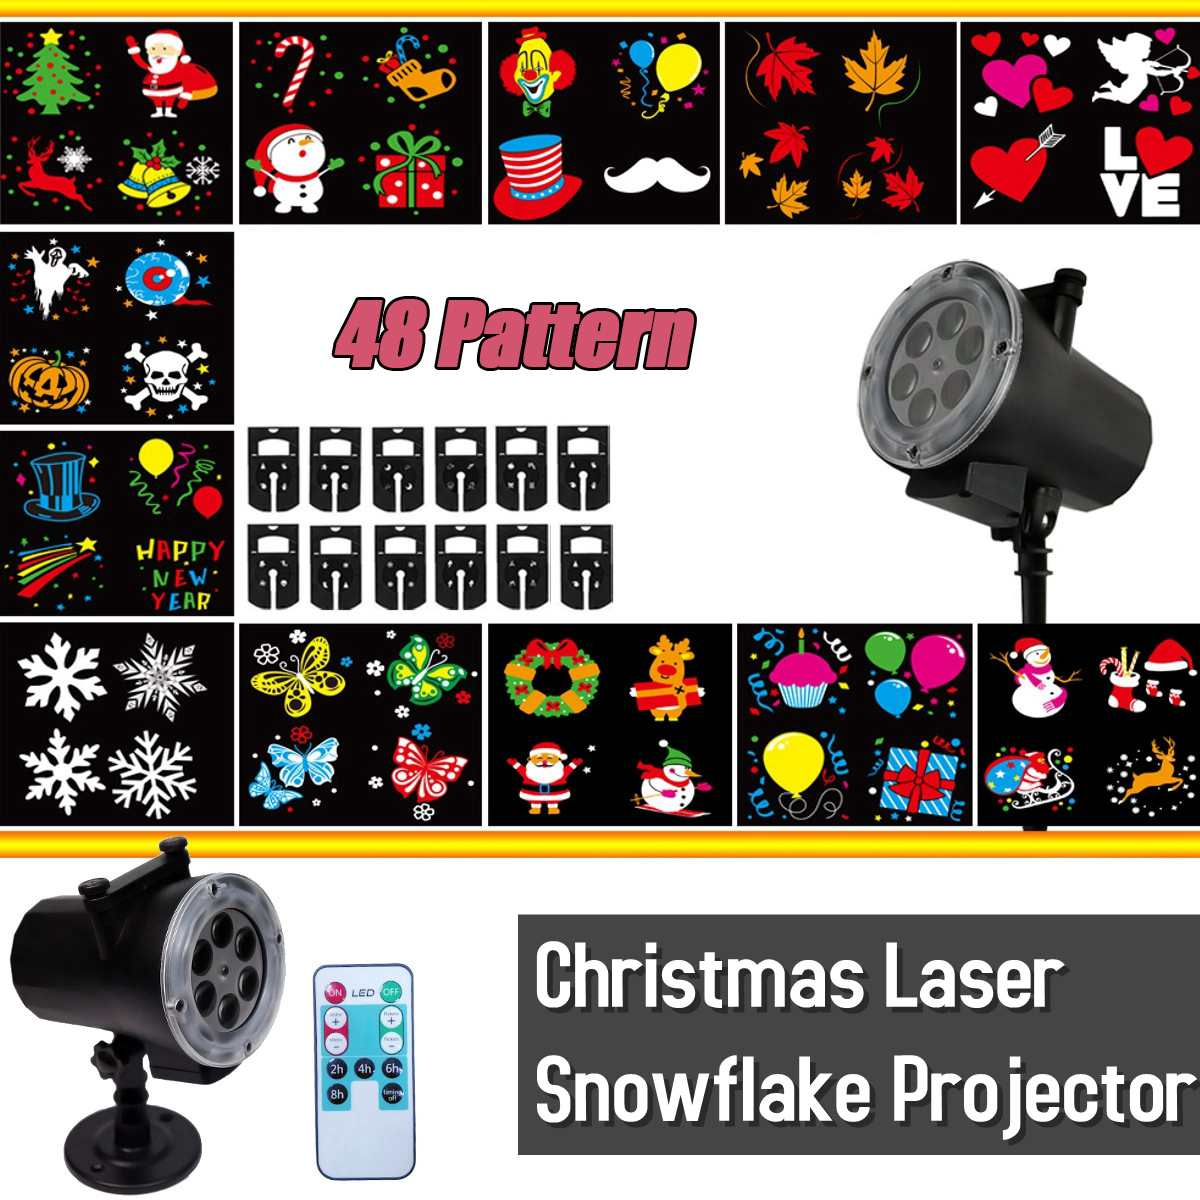 Stage Lighting Effect Lights & Lighting The Cheapest Price 16 Patterns Christmas Laser Snowflake Projector Outdoor Led Waterproof Disco Lights Home Garden Star Light Indoor Decoration